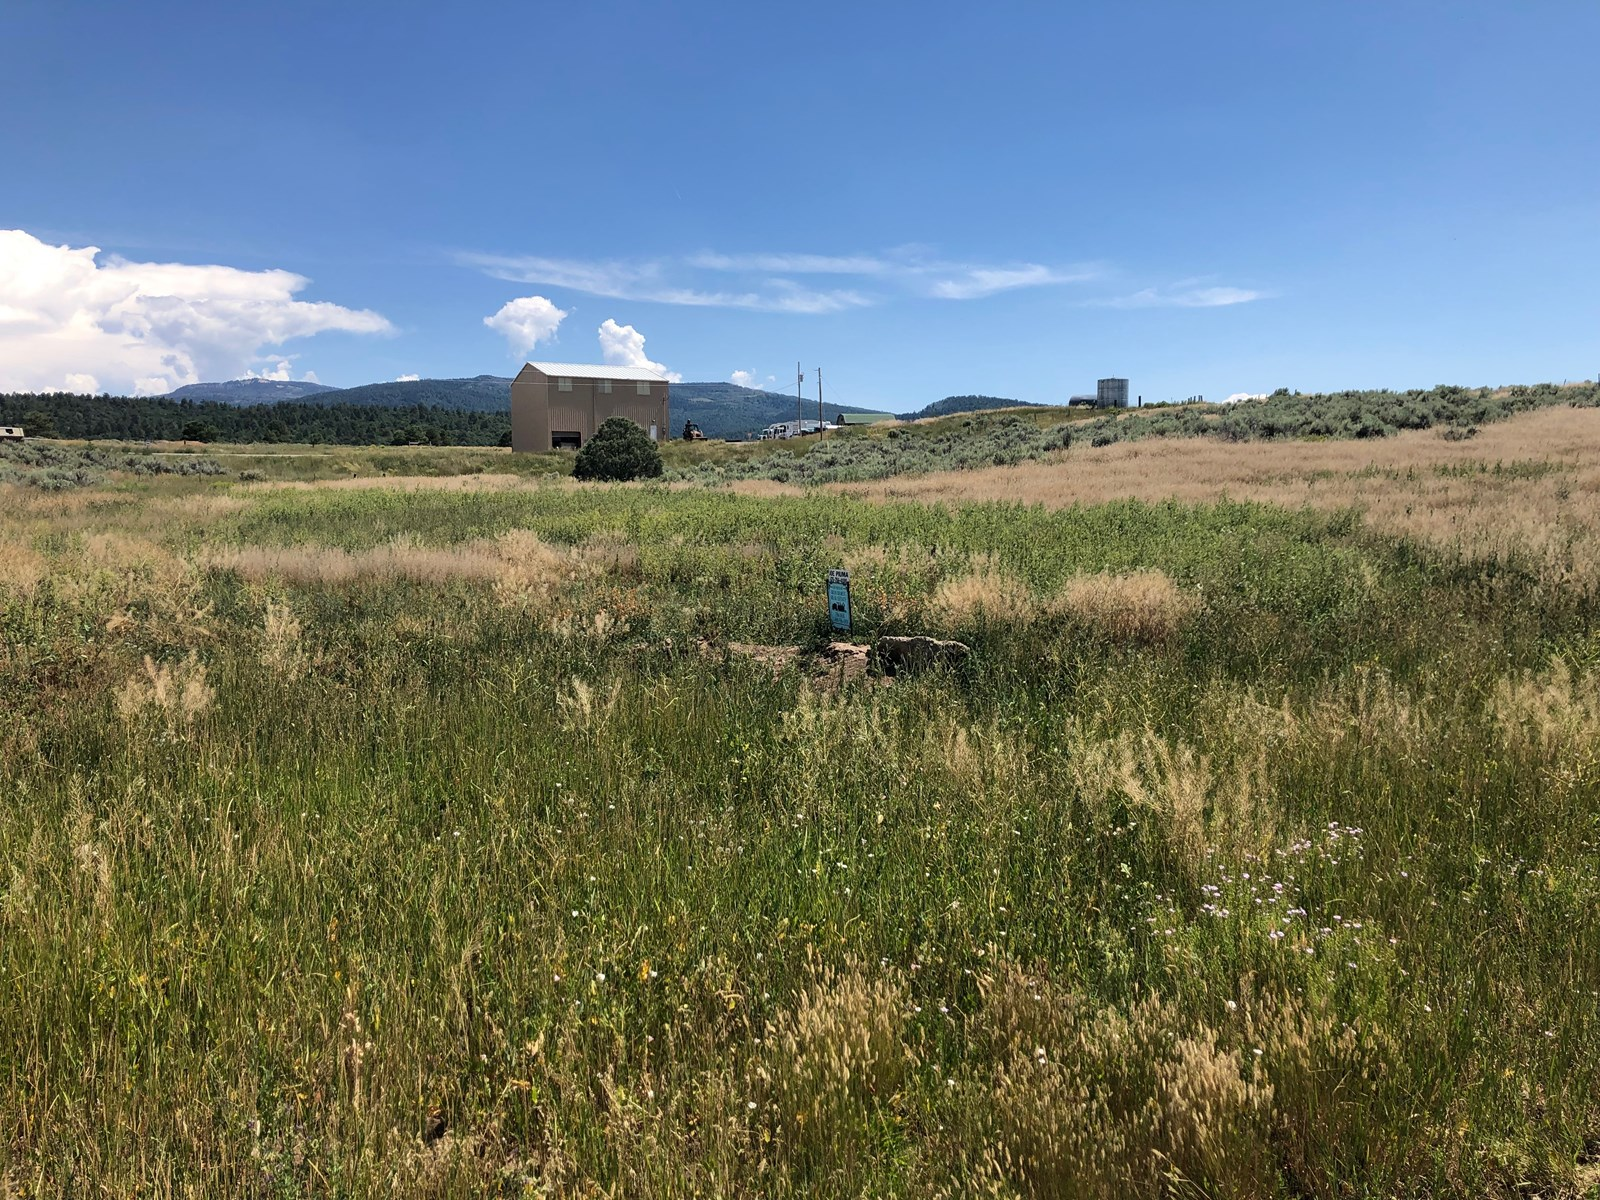 Land for sale downtown Tierra Amarilla, NM